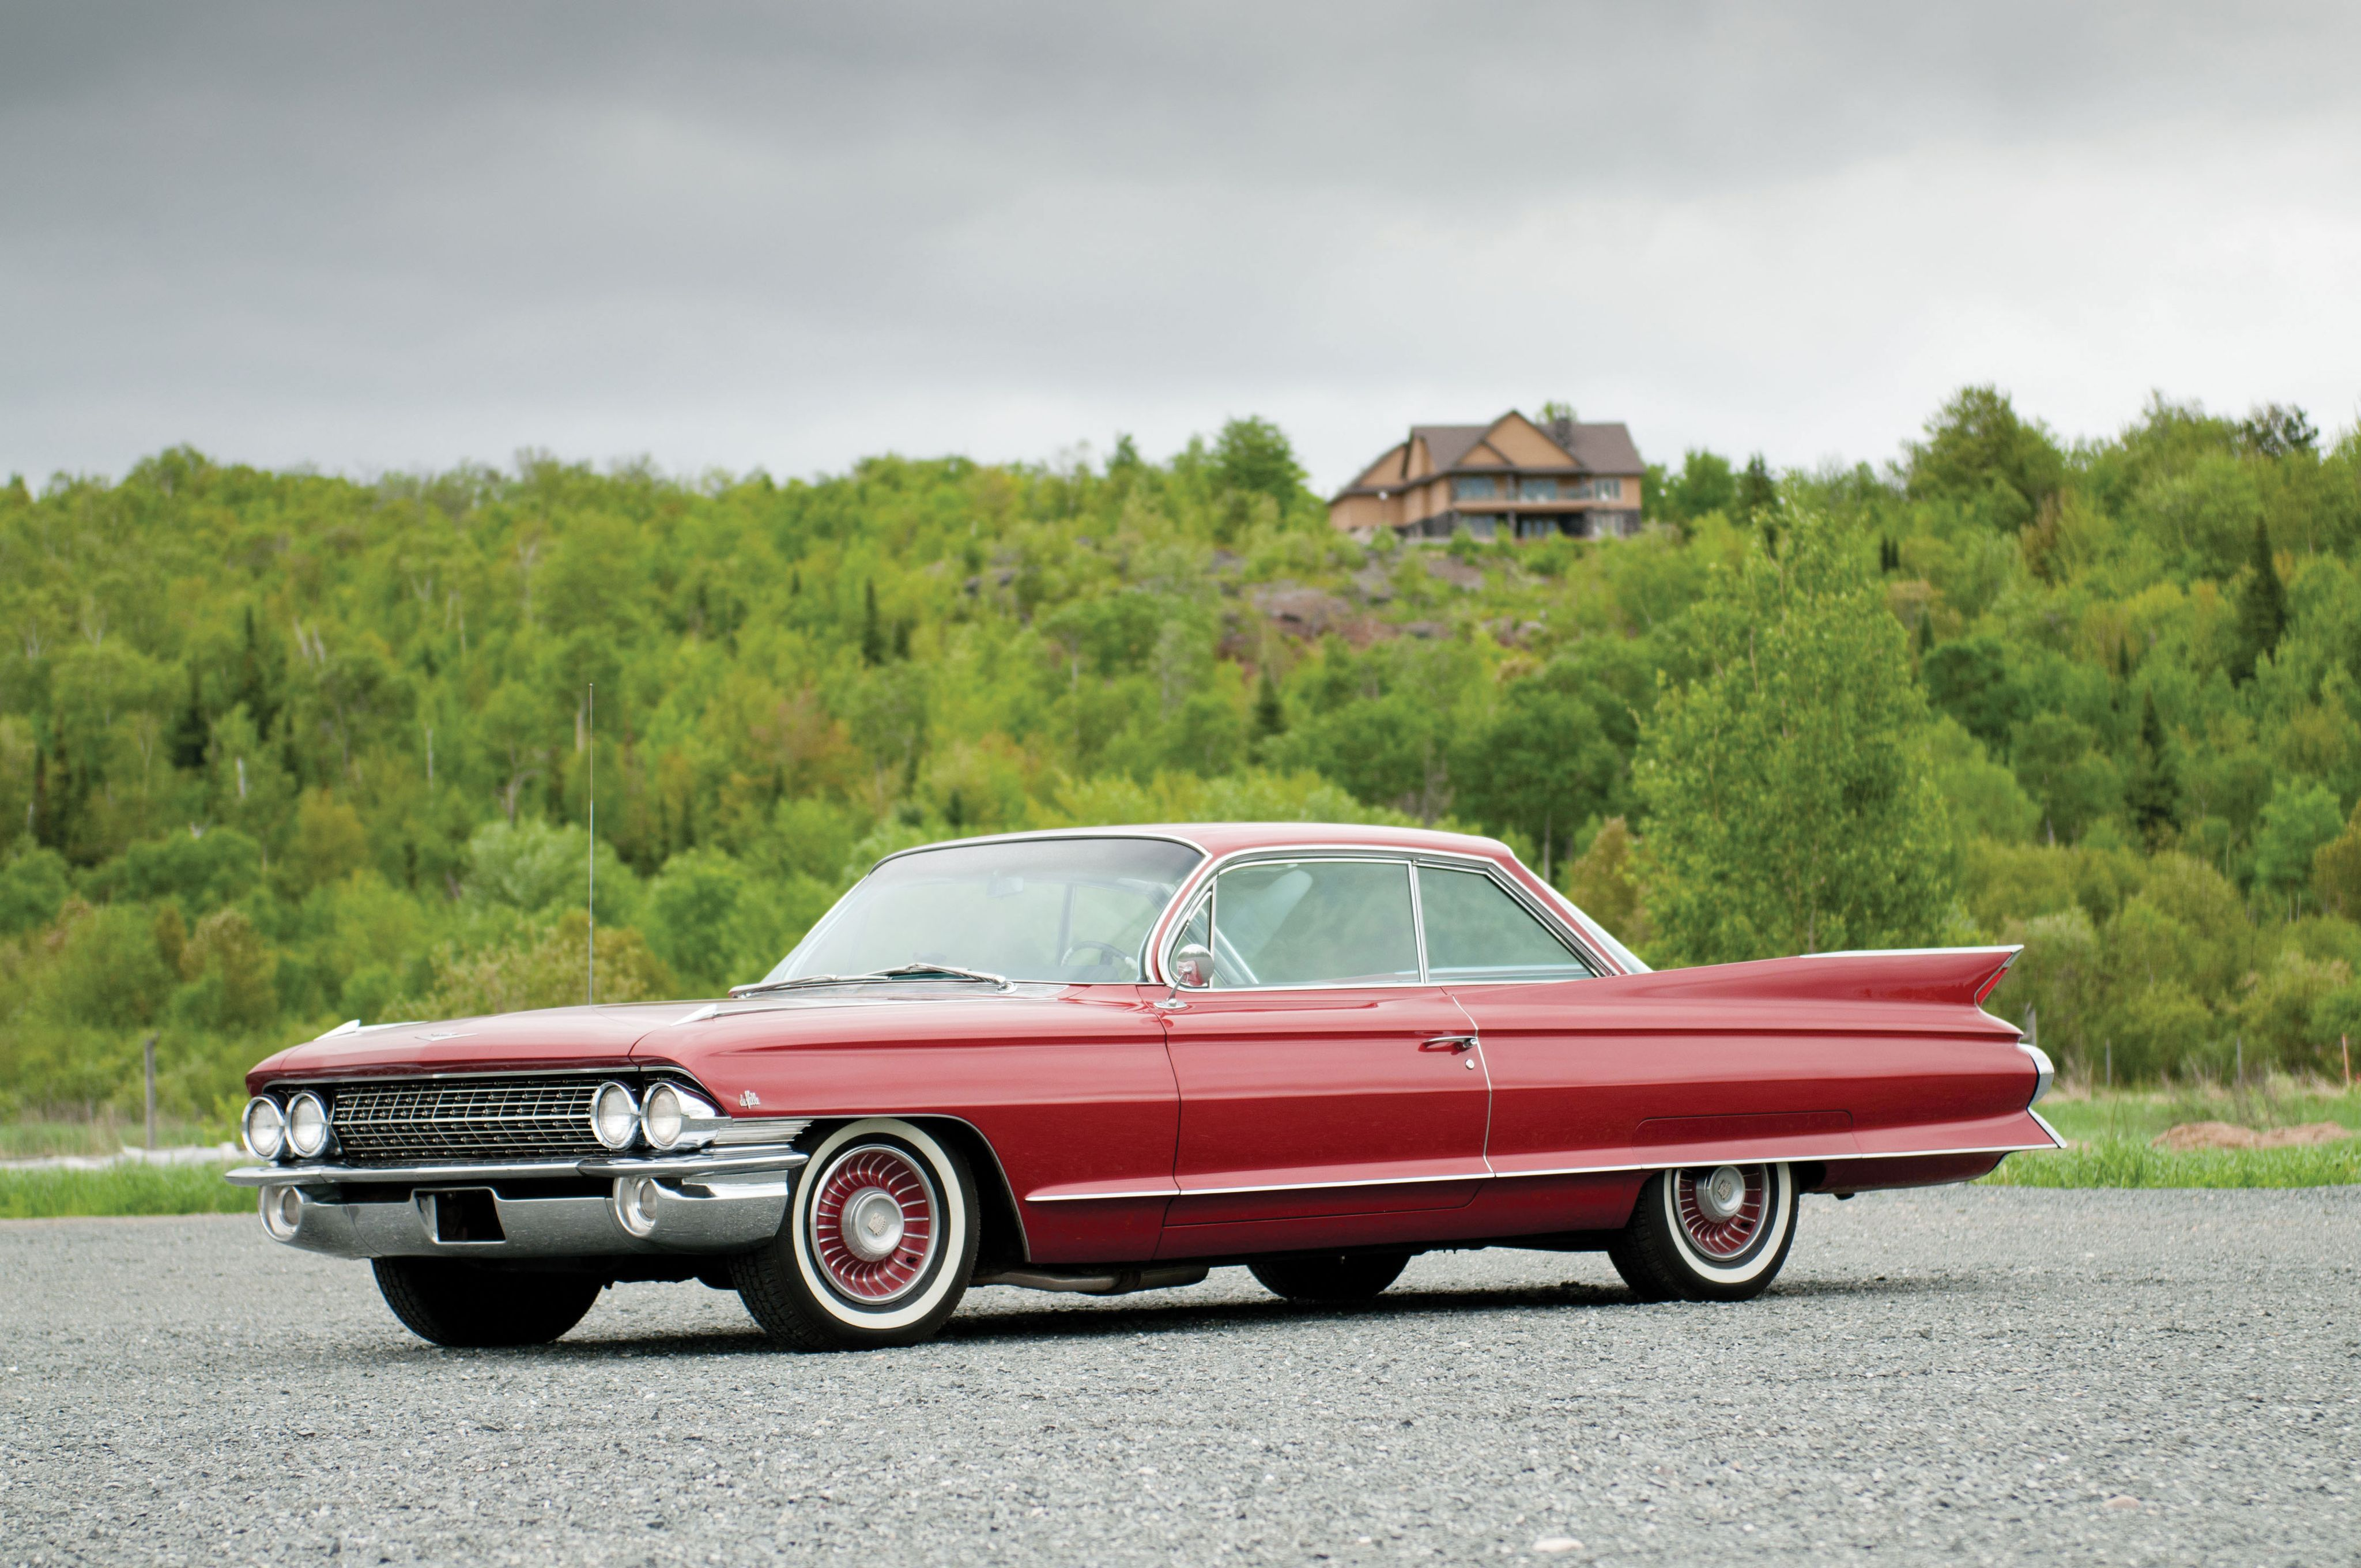 1961 Cadillac Sixty-Two Coupe de Ville | Classic Cars | Pinterest ...